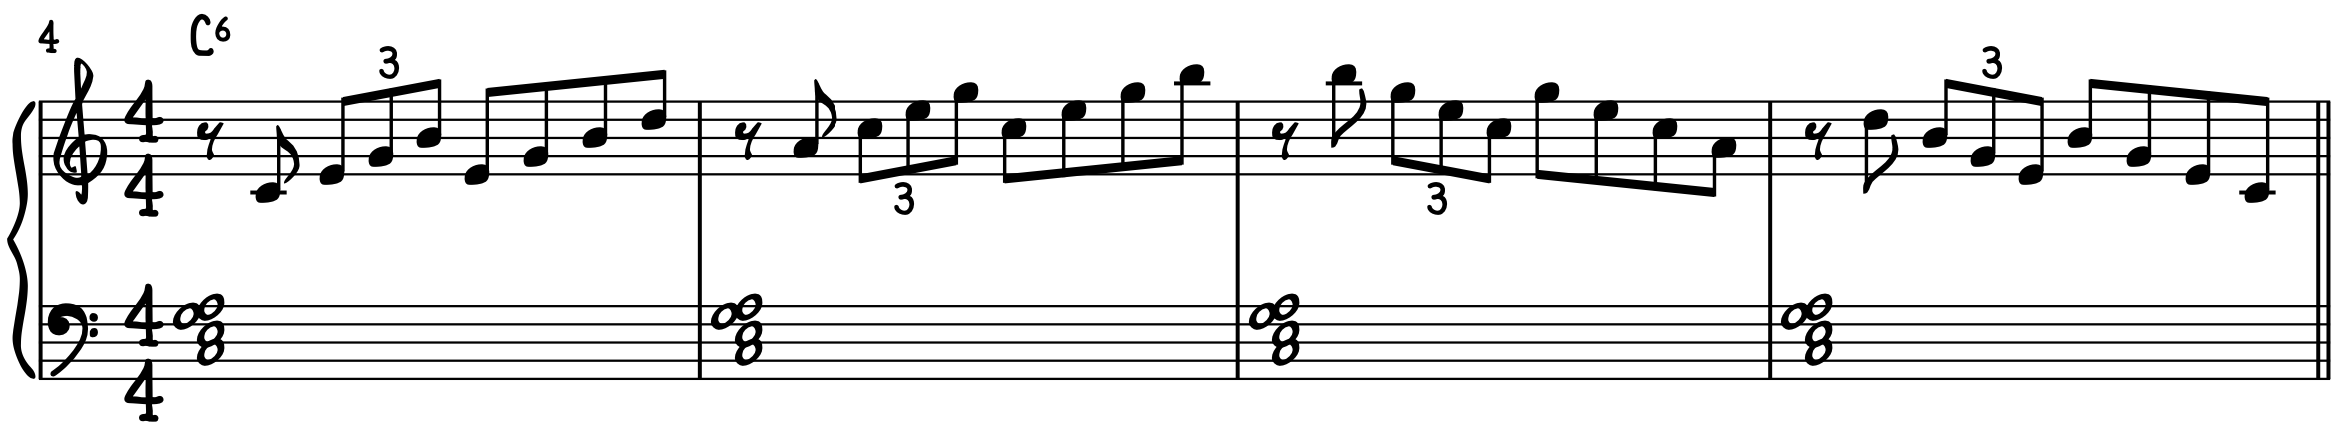 Exercise Outline 7th Chords with Primary Pairs